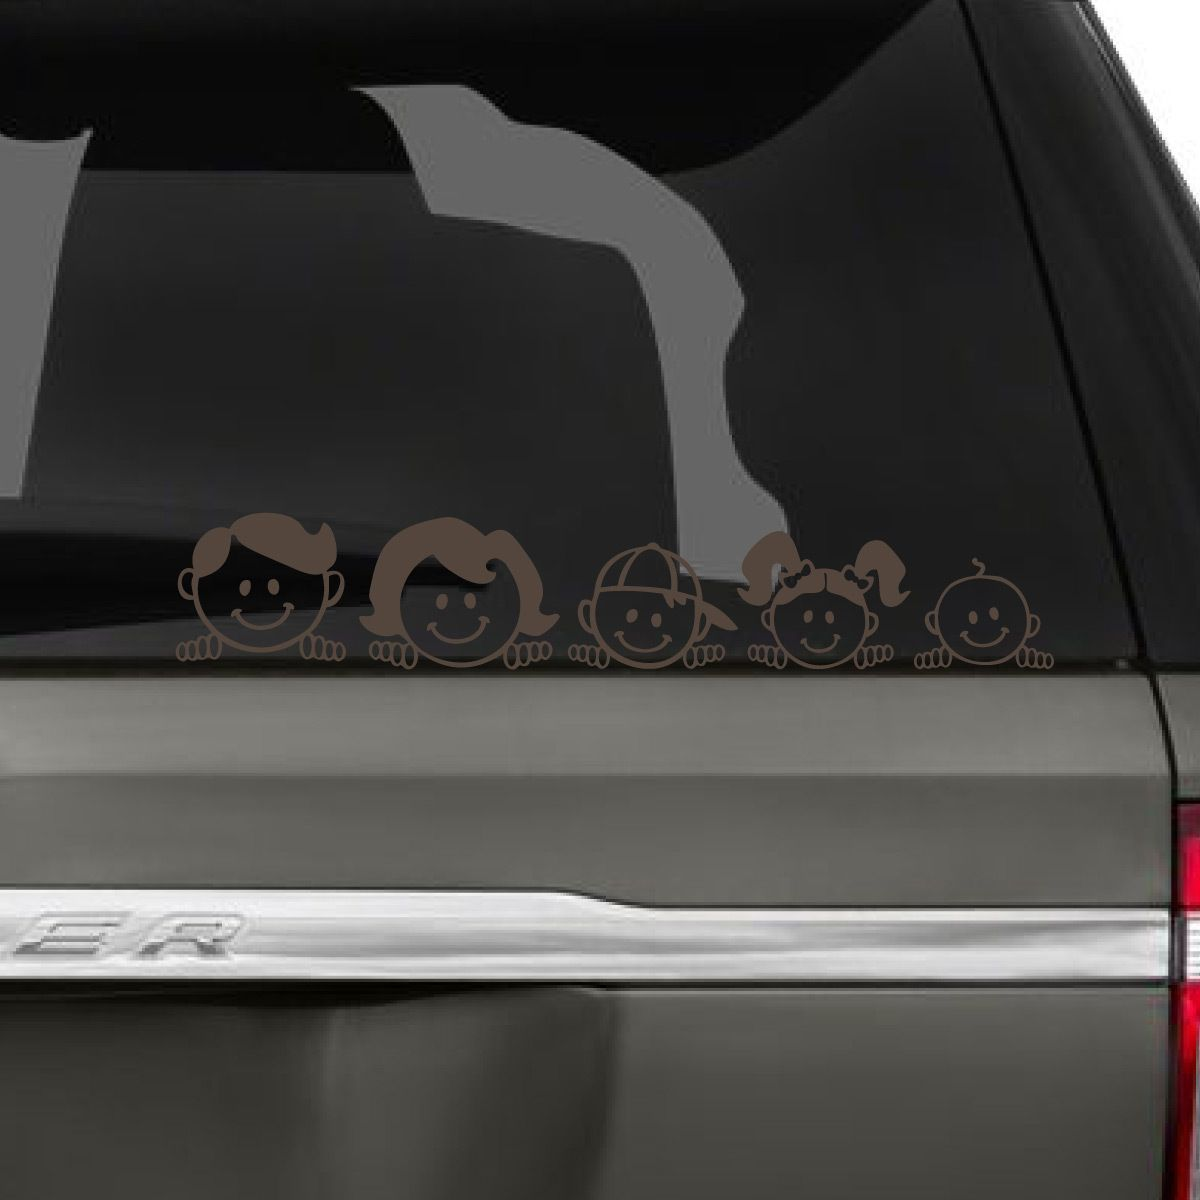 Peeping Family Car Decal Family Car Decals Family Car Stickers Family Car [ 1200 x 1200 Pixel ]